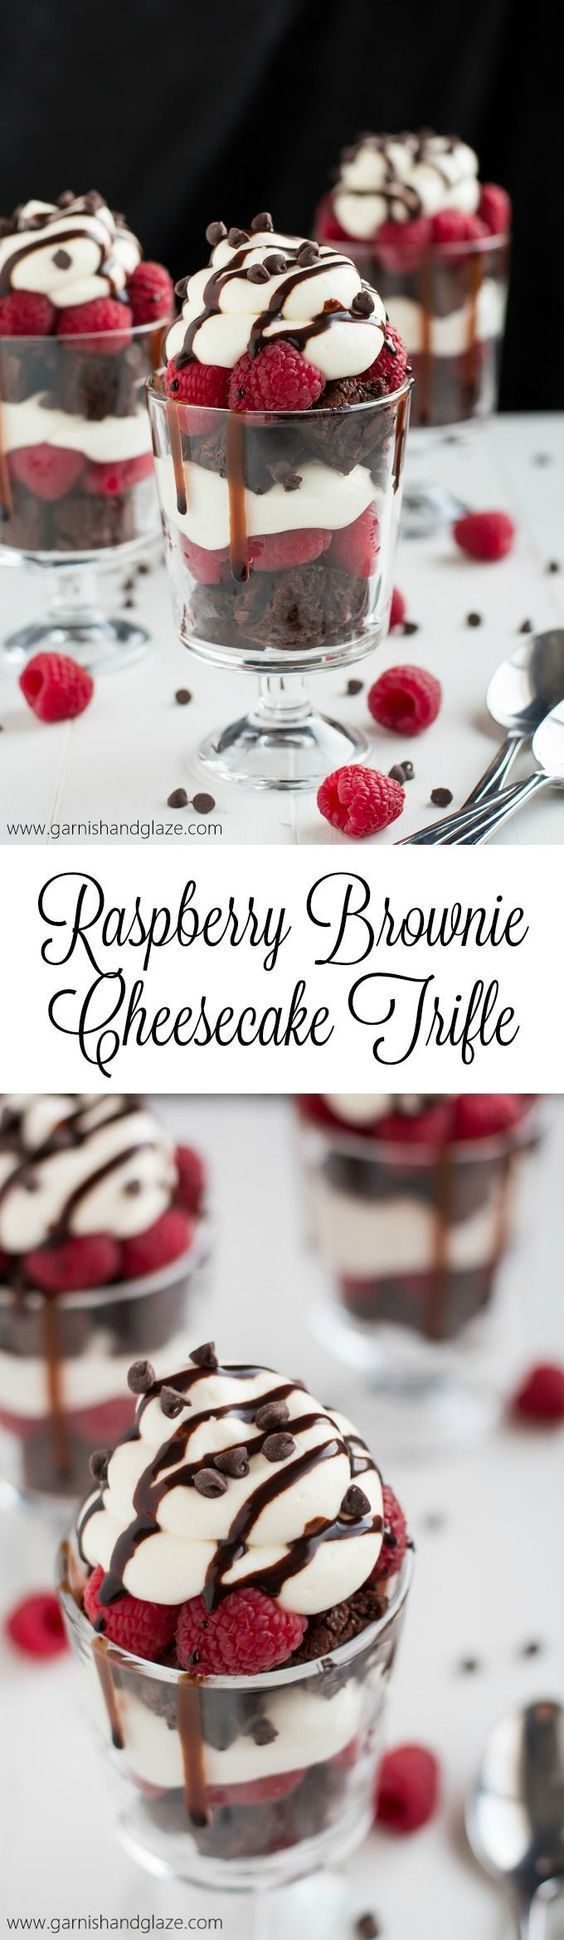 Nothing says love like these Raspberry Brownie Cheesecake Trifles made with rich chocolate from-scratch chocolate chip brownies, easy no-bake cheesecake filling, and fresh sweet raspberries.